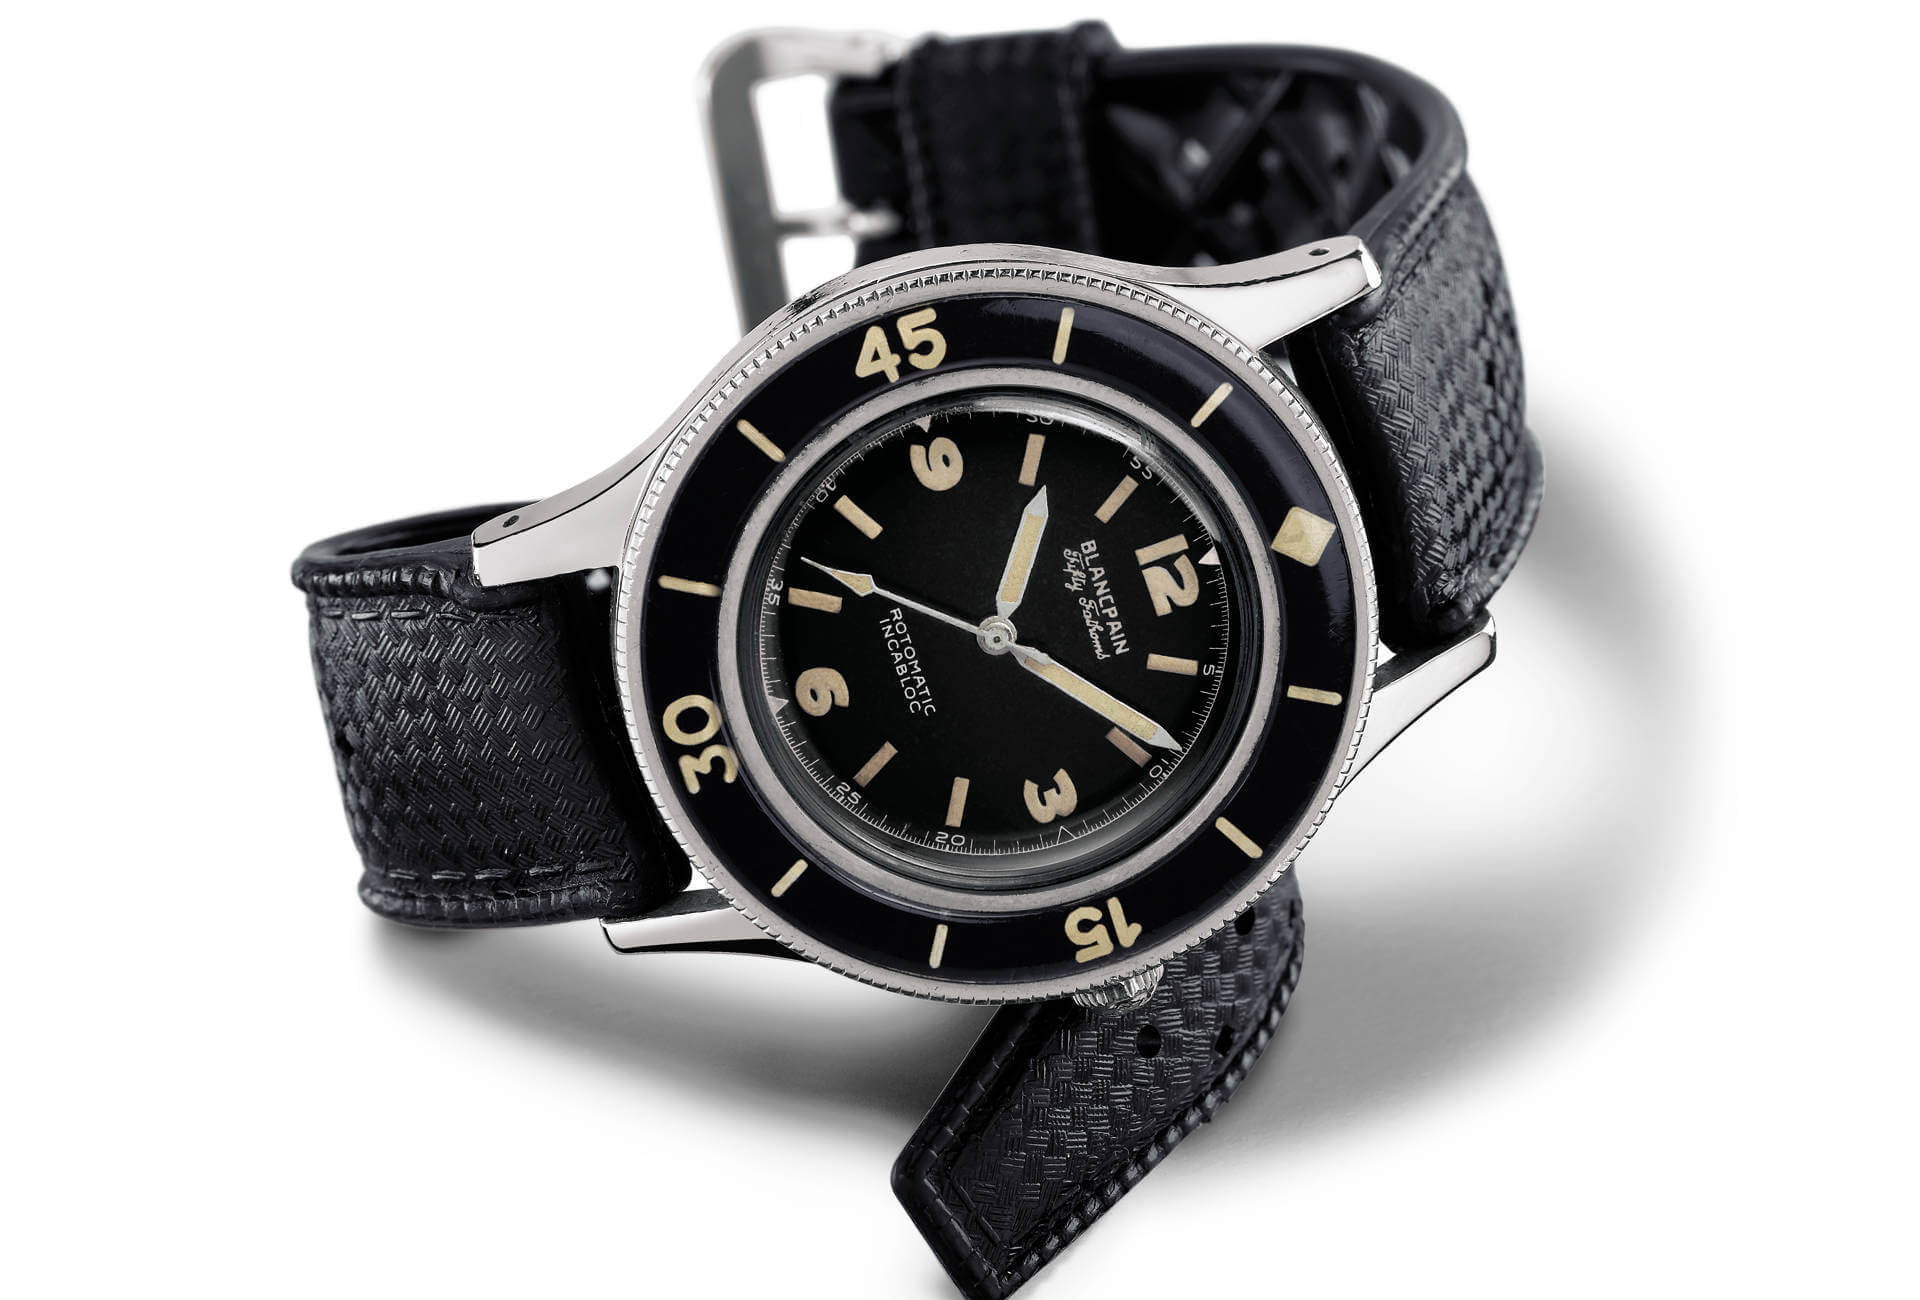 Dive Watch Fundamentals – How Blancpain gave birth to the modern dive watch